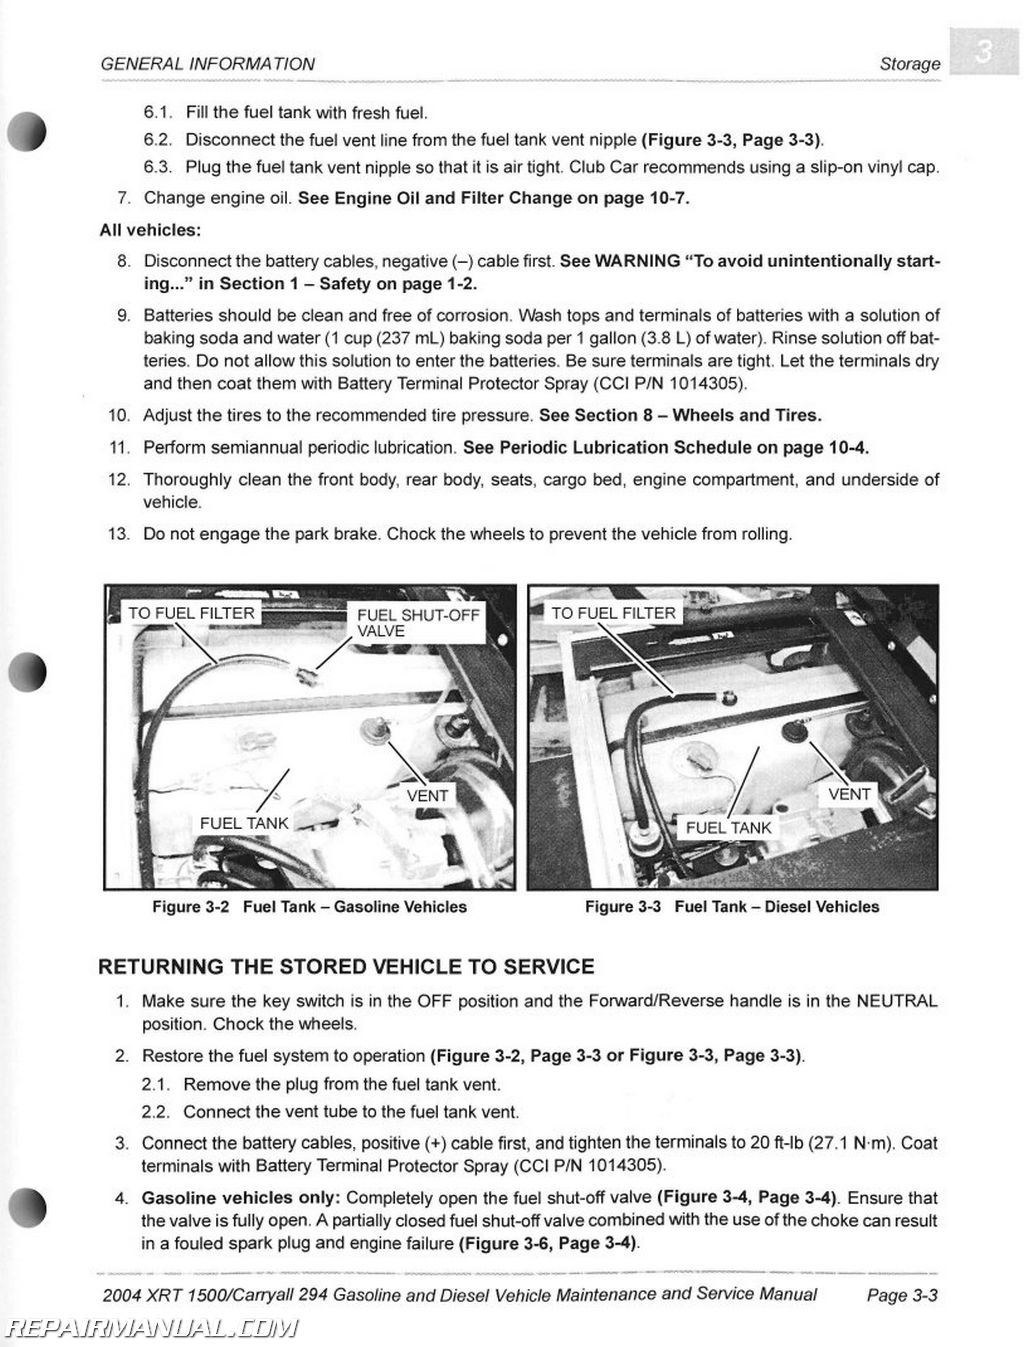 club car 36v wiring diagram 1976 club car xrt wiring diagram 2004 club car carryall 294 and xrt 1500 maintenance and service manual